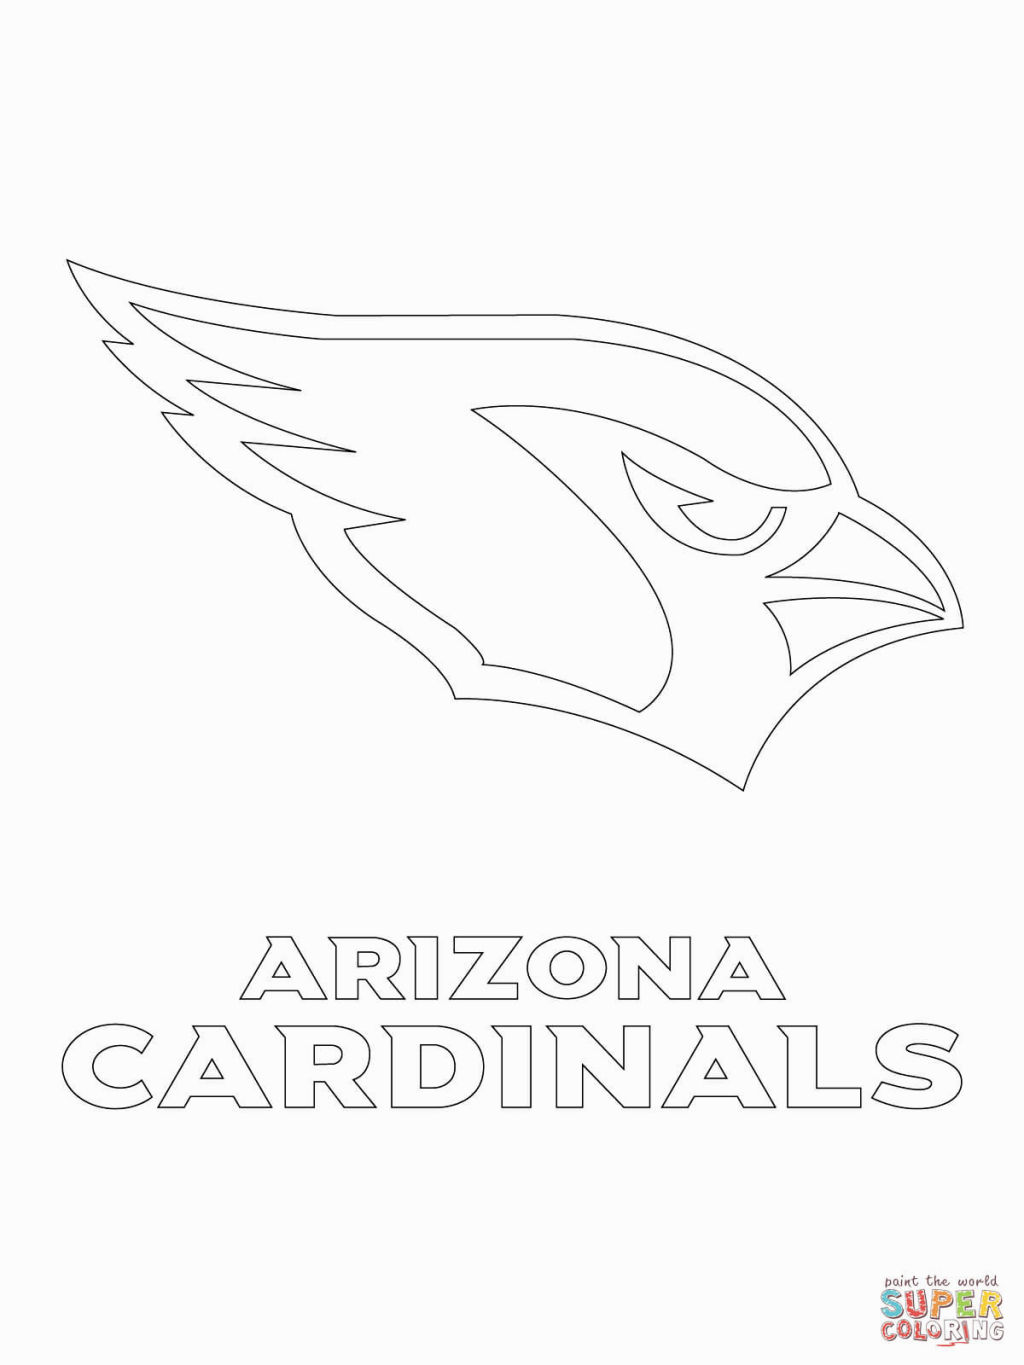 Nfl Logo Drawing at GetDrawings.com | Free for personal use Nfl Logo ...